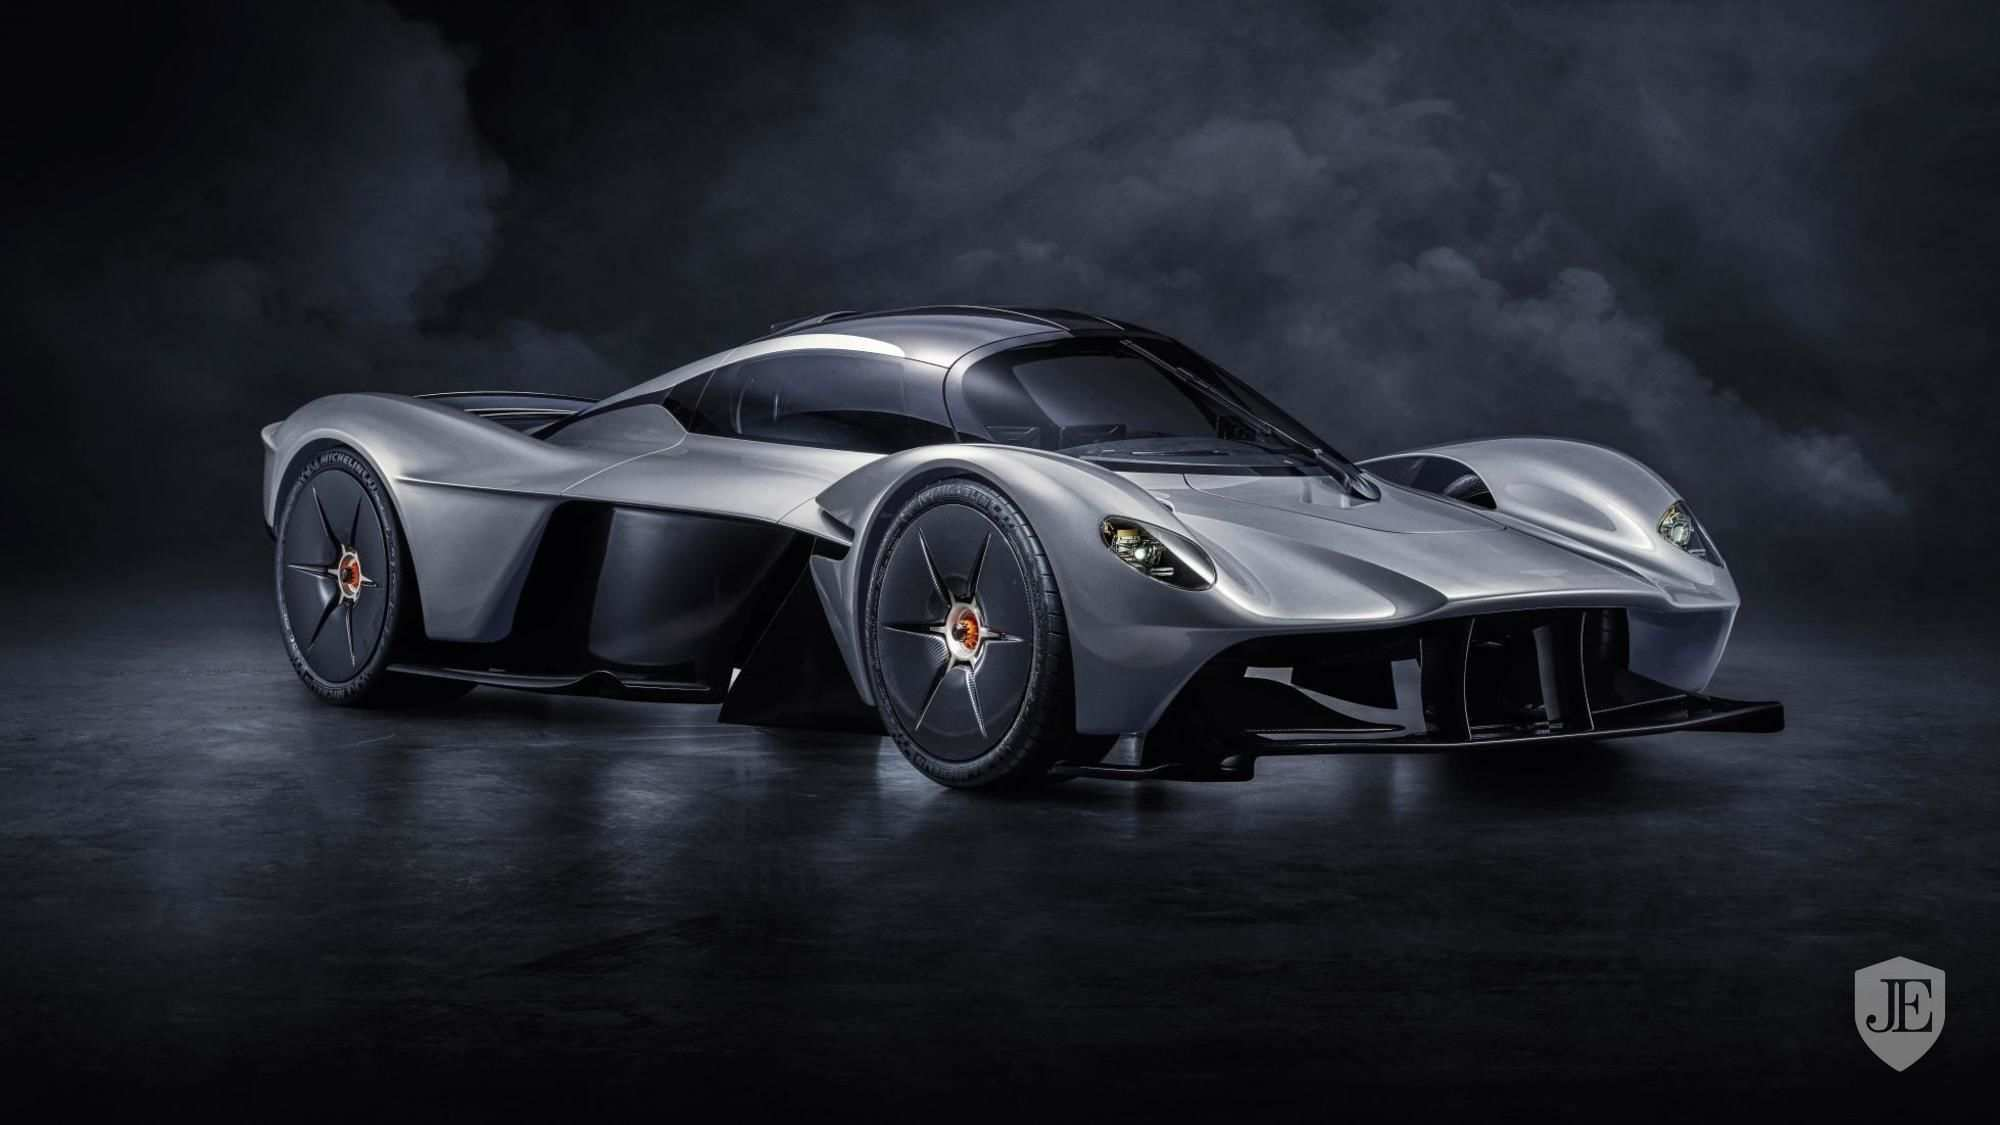 89 New 2019 Aston Martin Valkyrie Pictures with 2019 Aston Martin Valkyrie